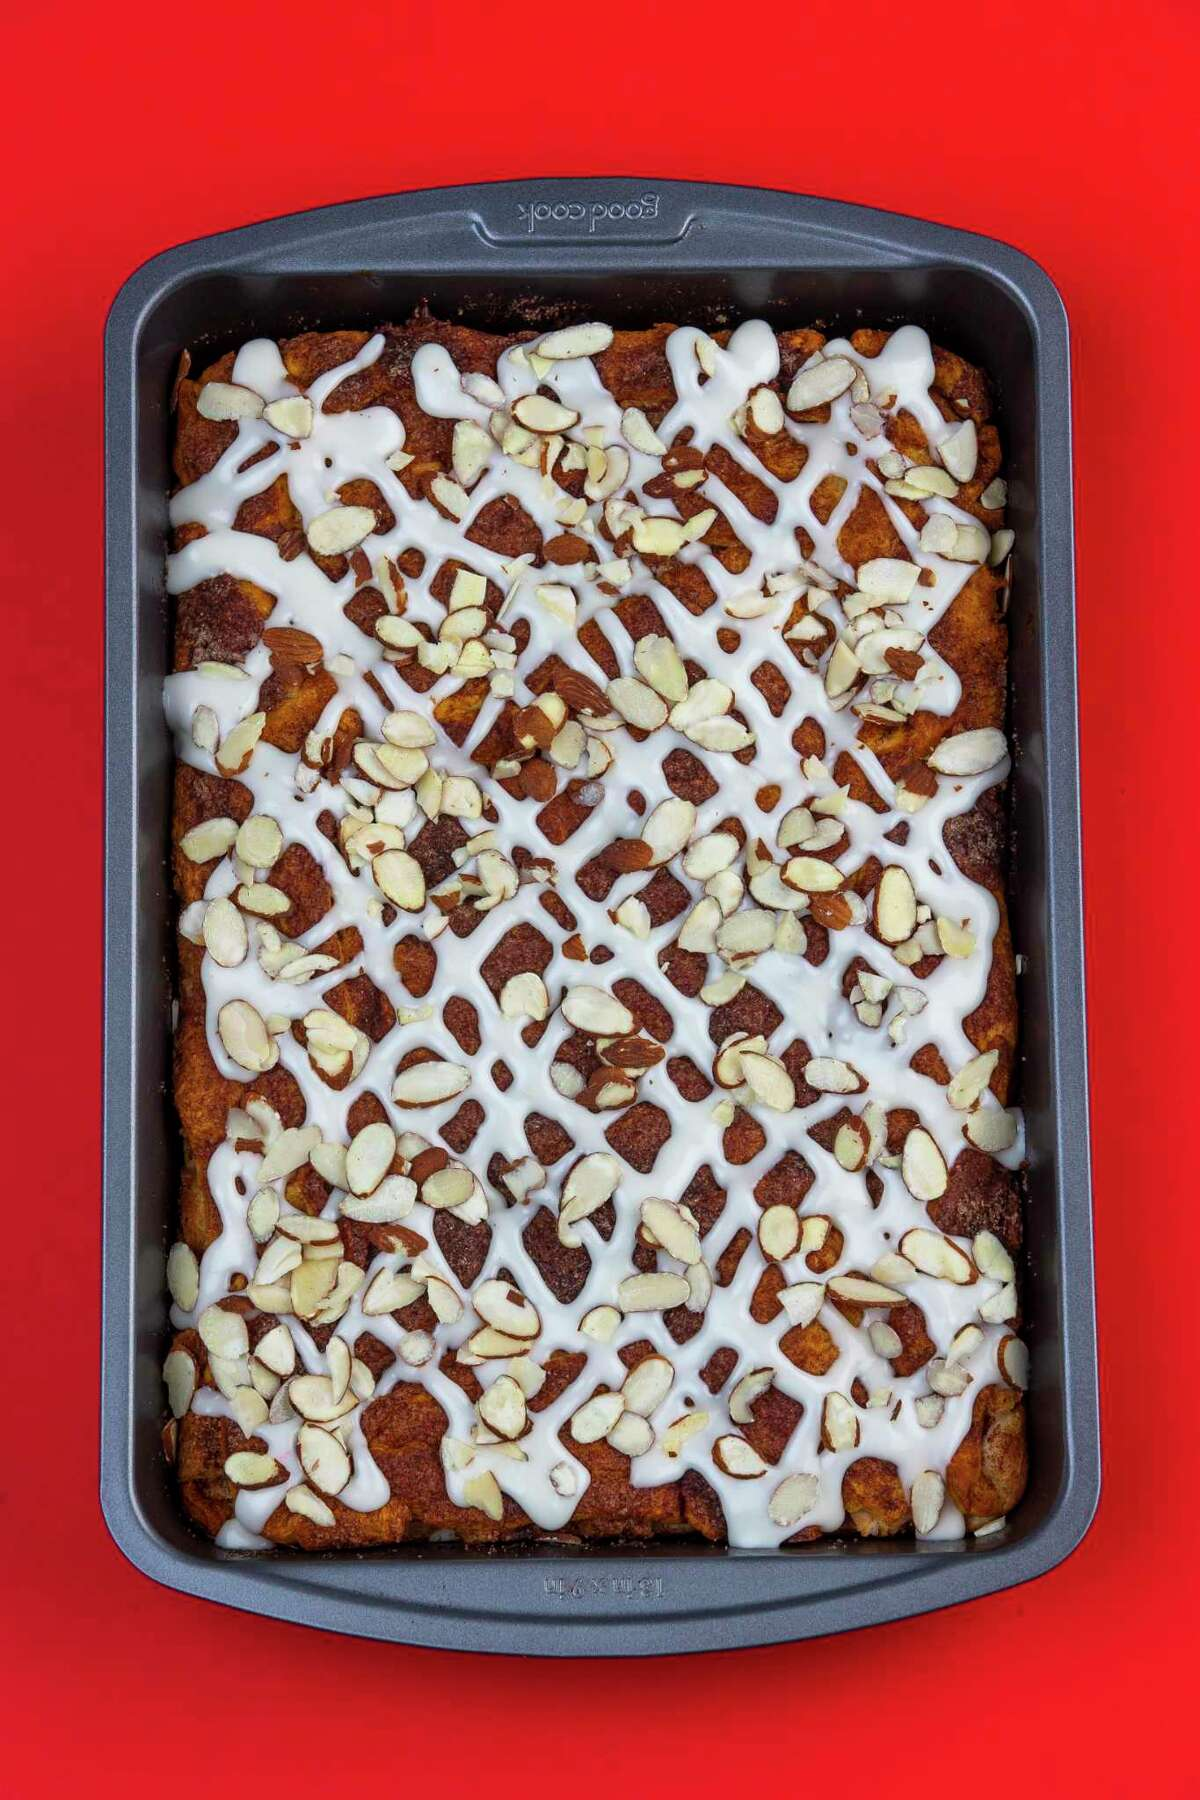 Concha Sopapilla Bars use concha sweet breads. The recipe comes from food writer and blogger Vianney Rodriguez of sweetlifebake.com.